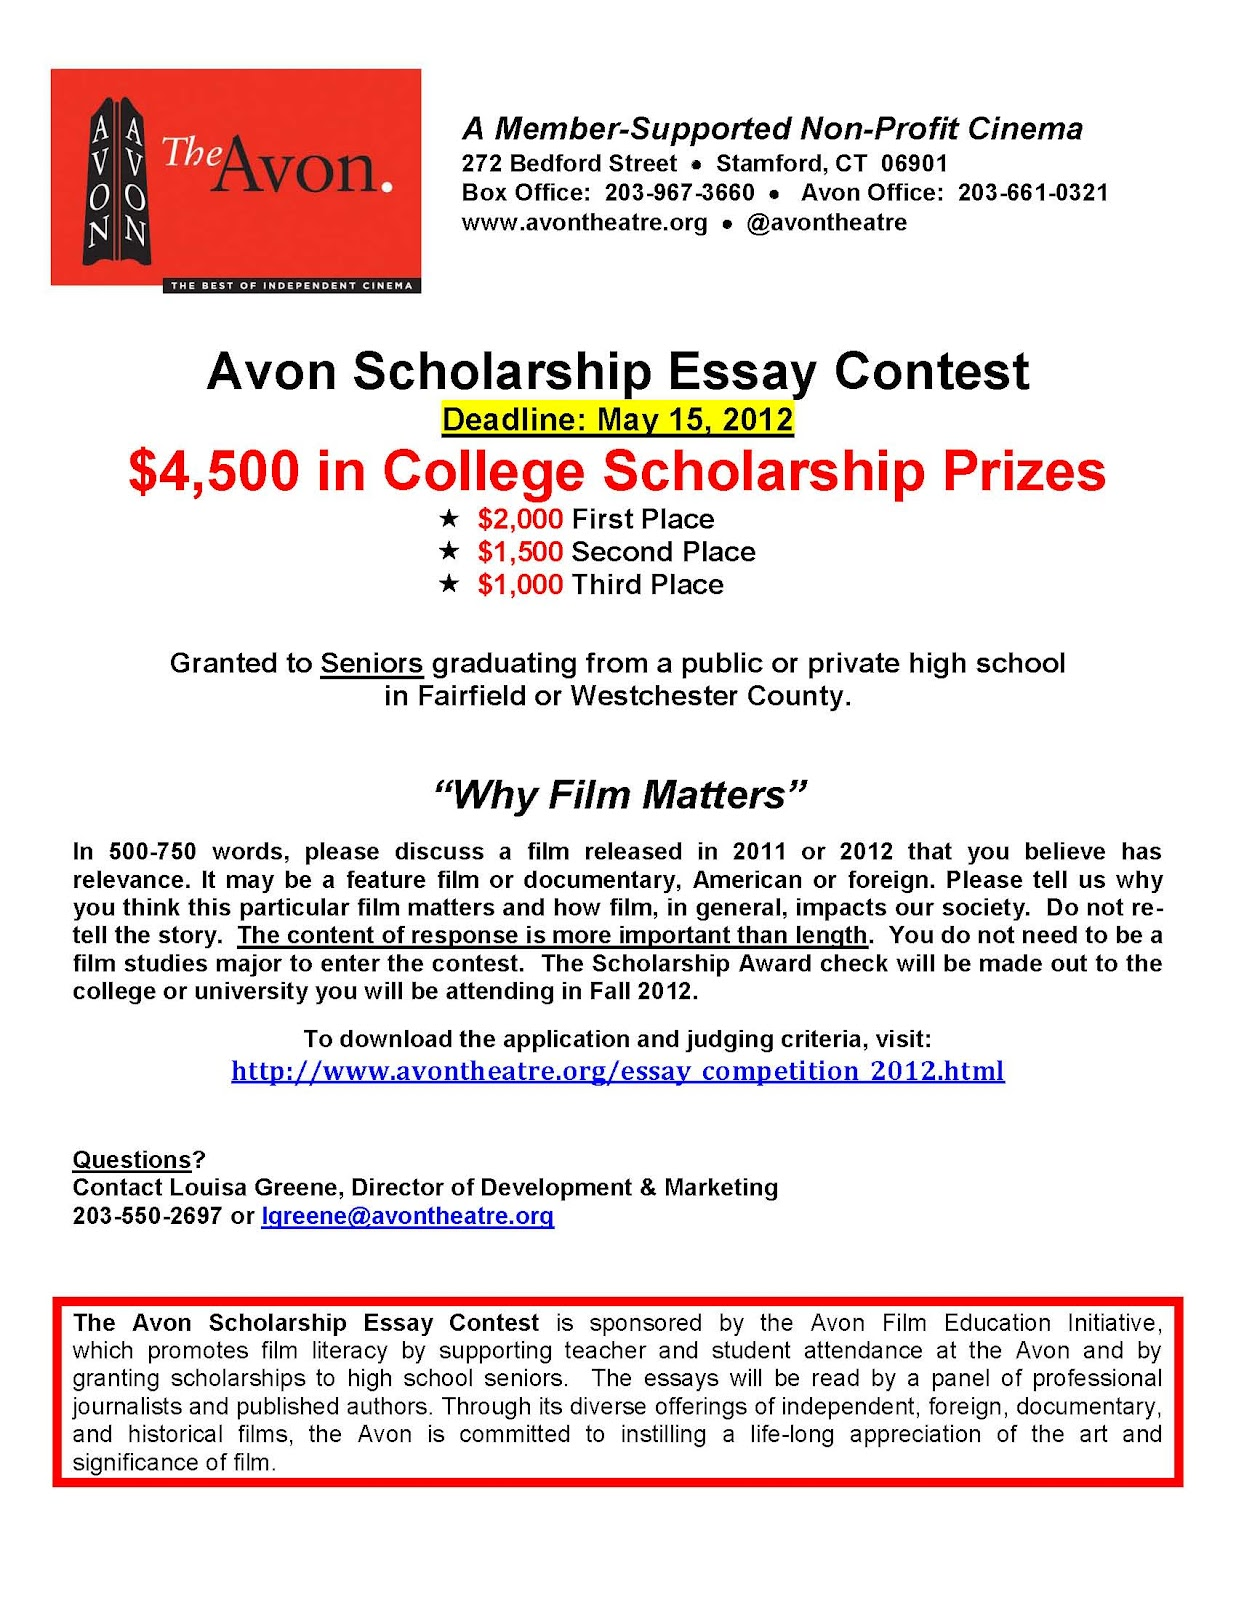 014 Essay Example High School Contests Fascinating Contest Winners 2019 For Scholarships Full